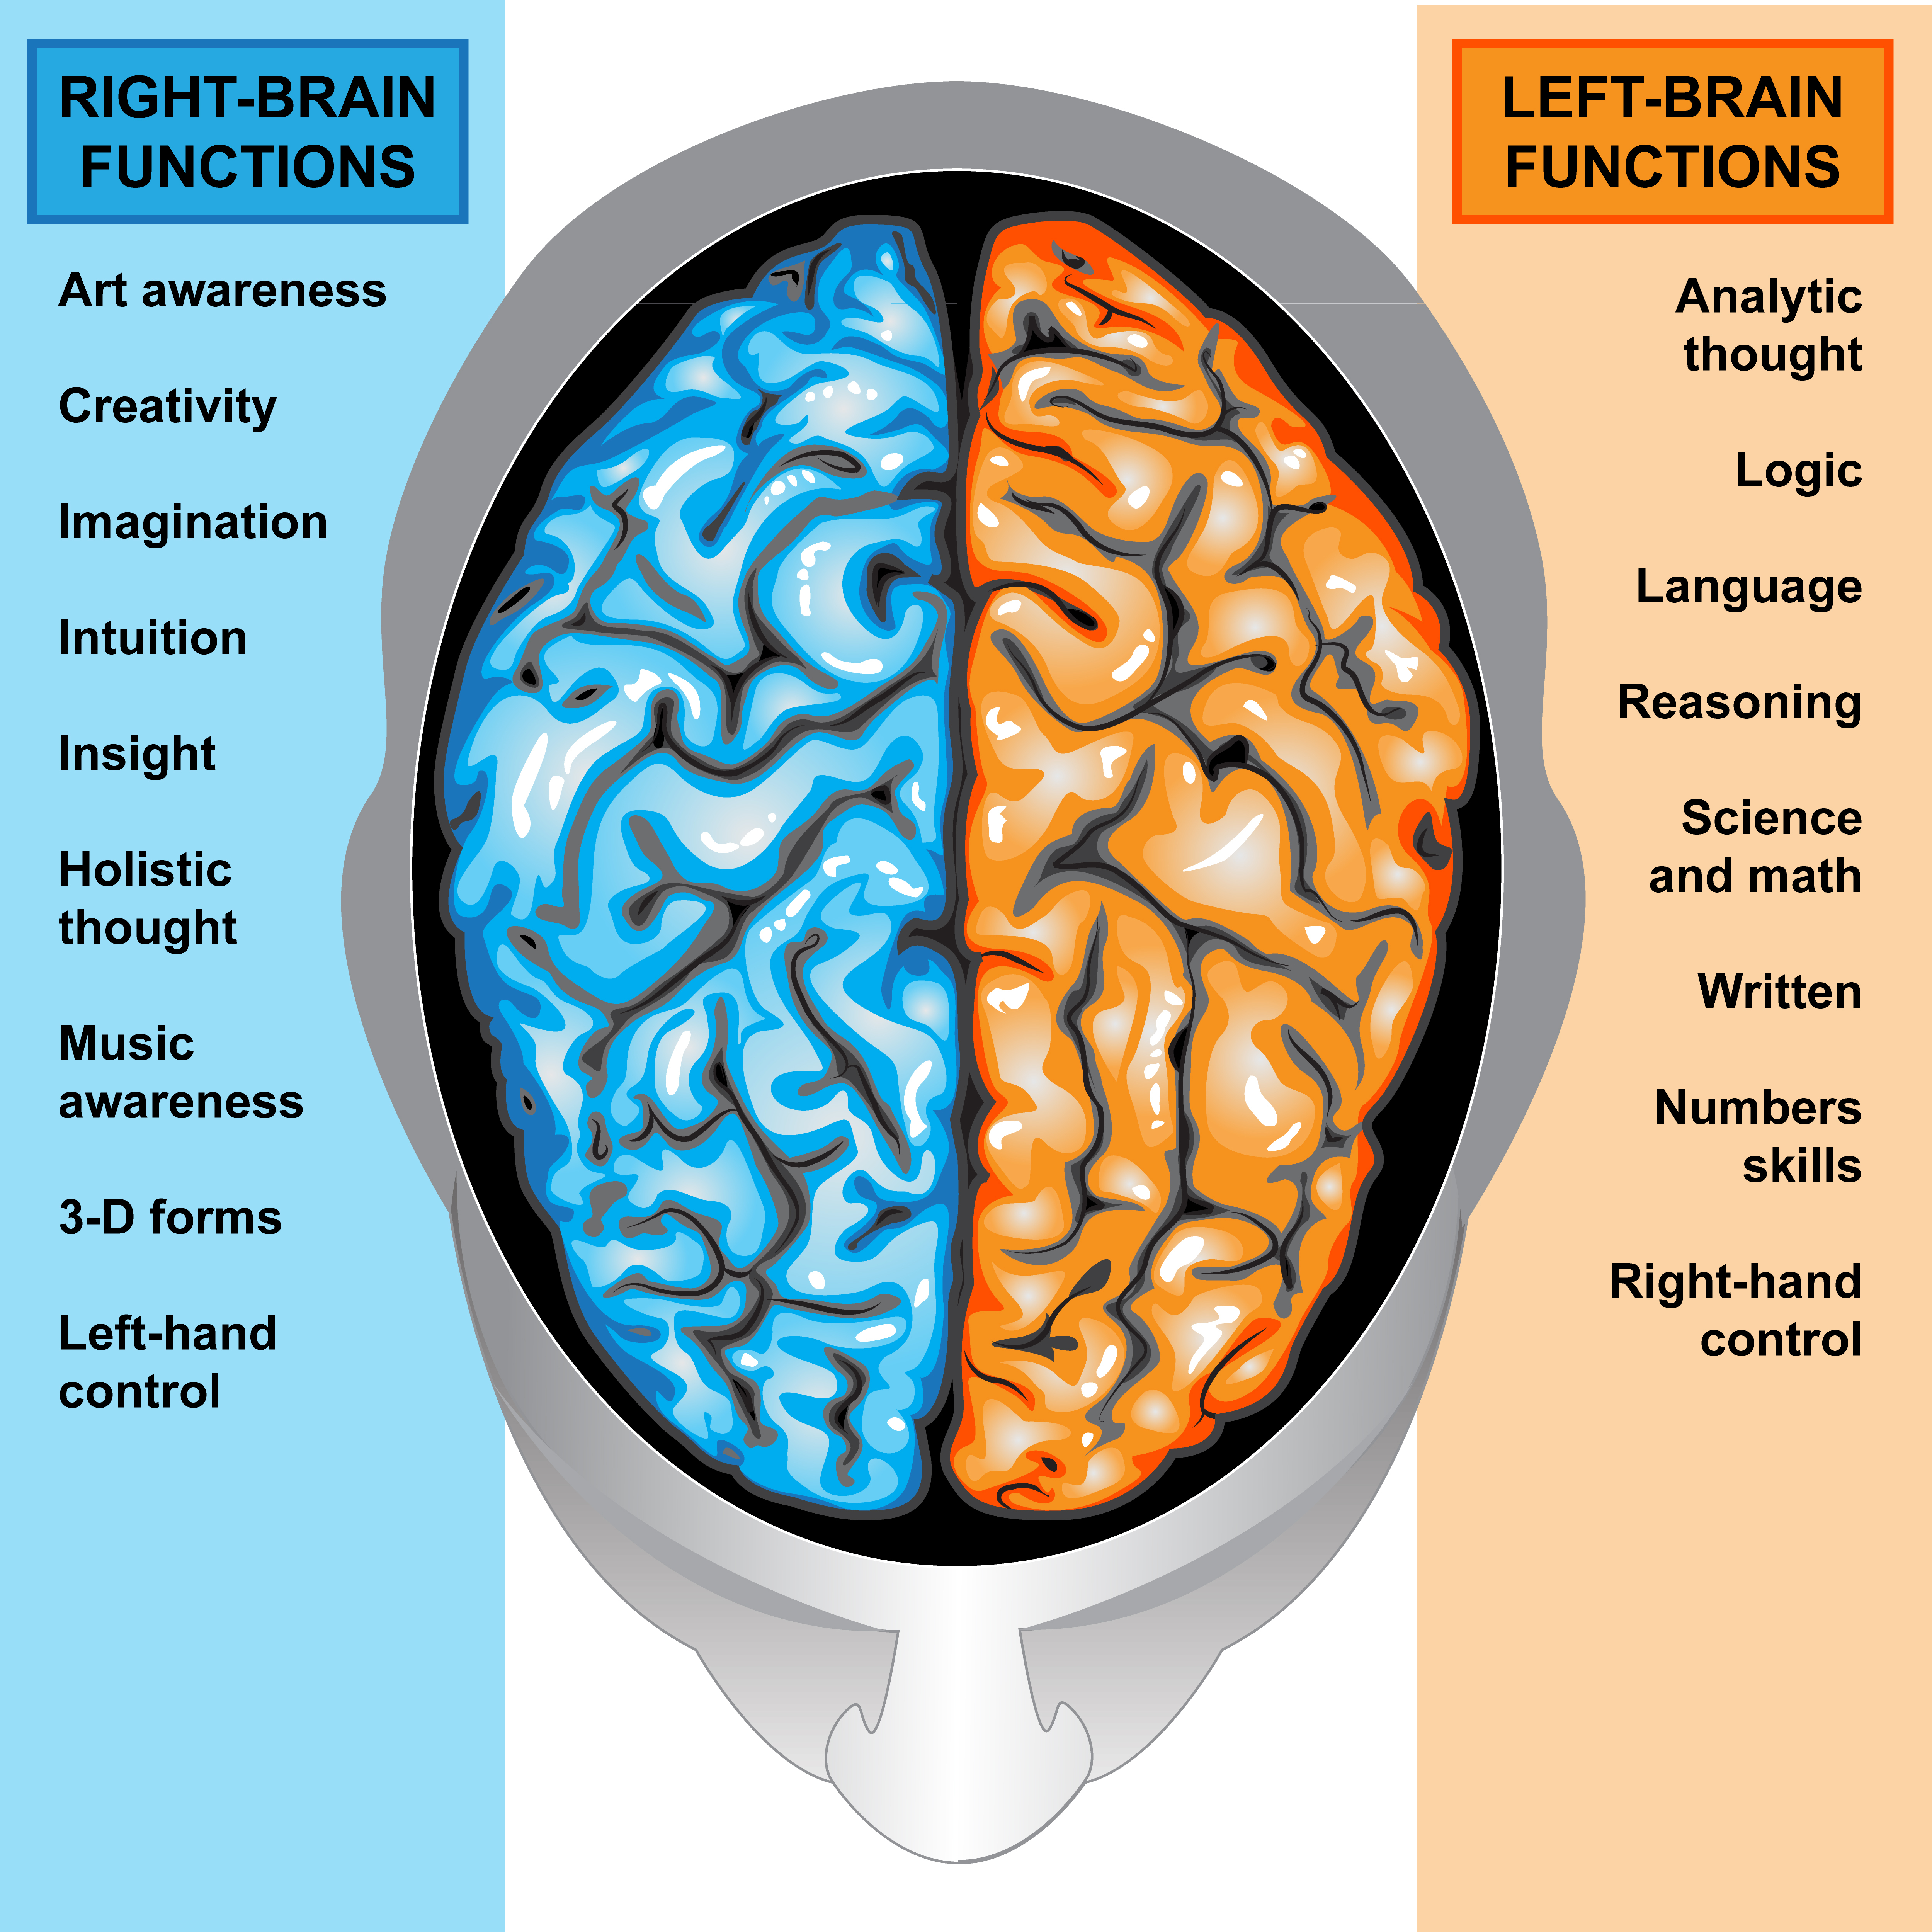 IIlustration body part,human brain left and right functions